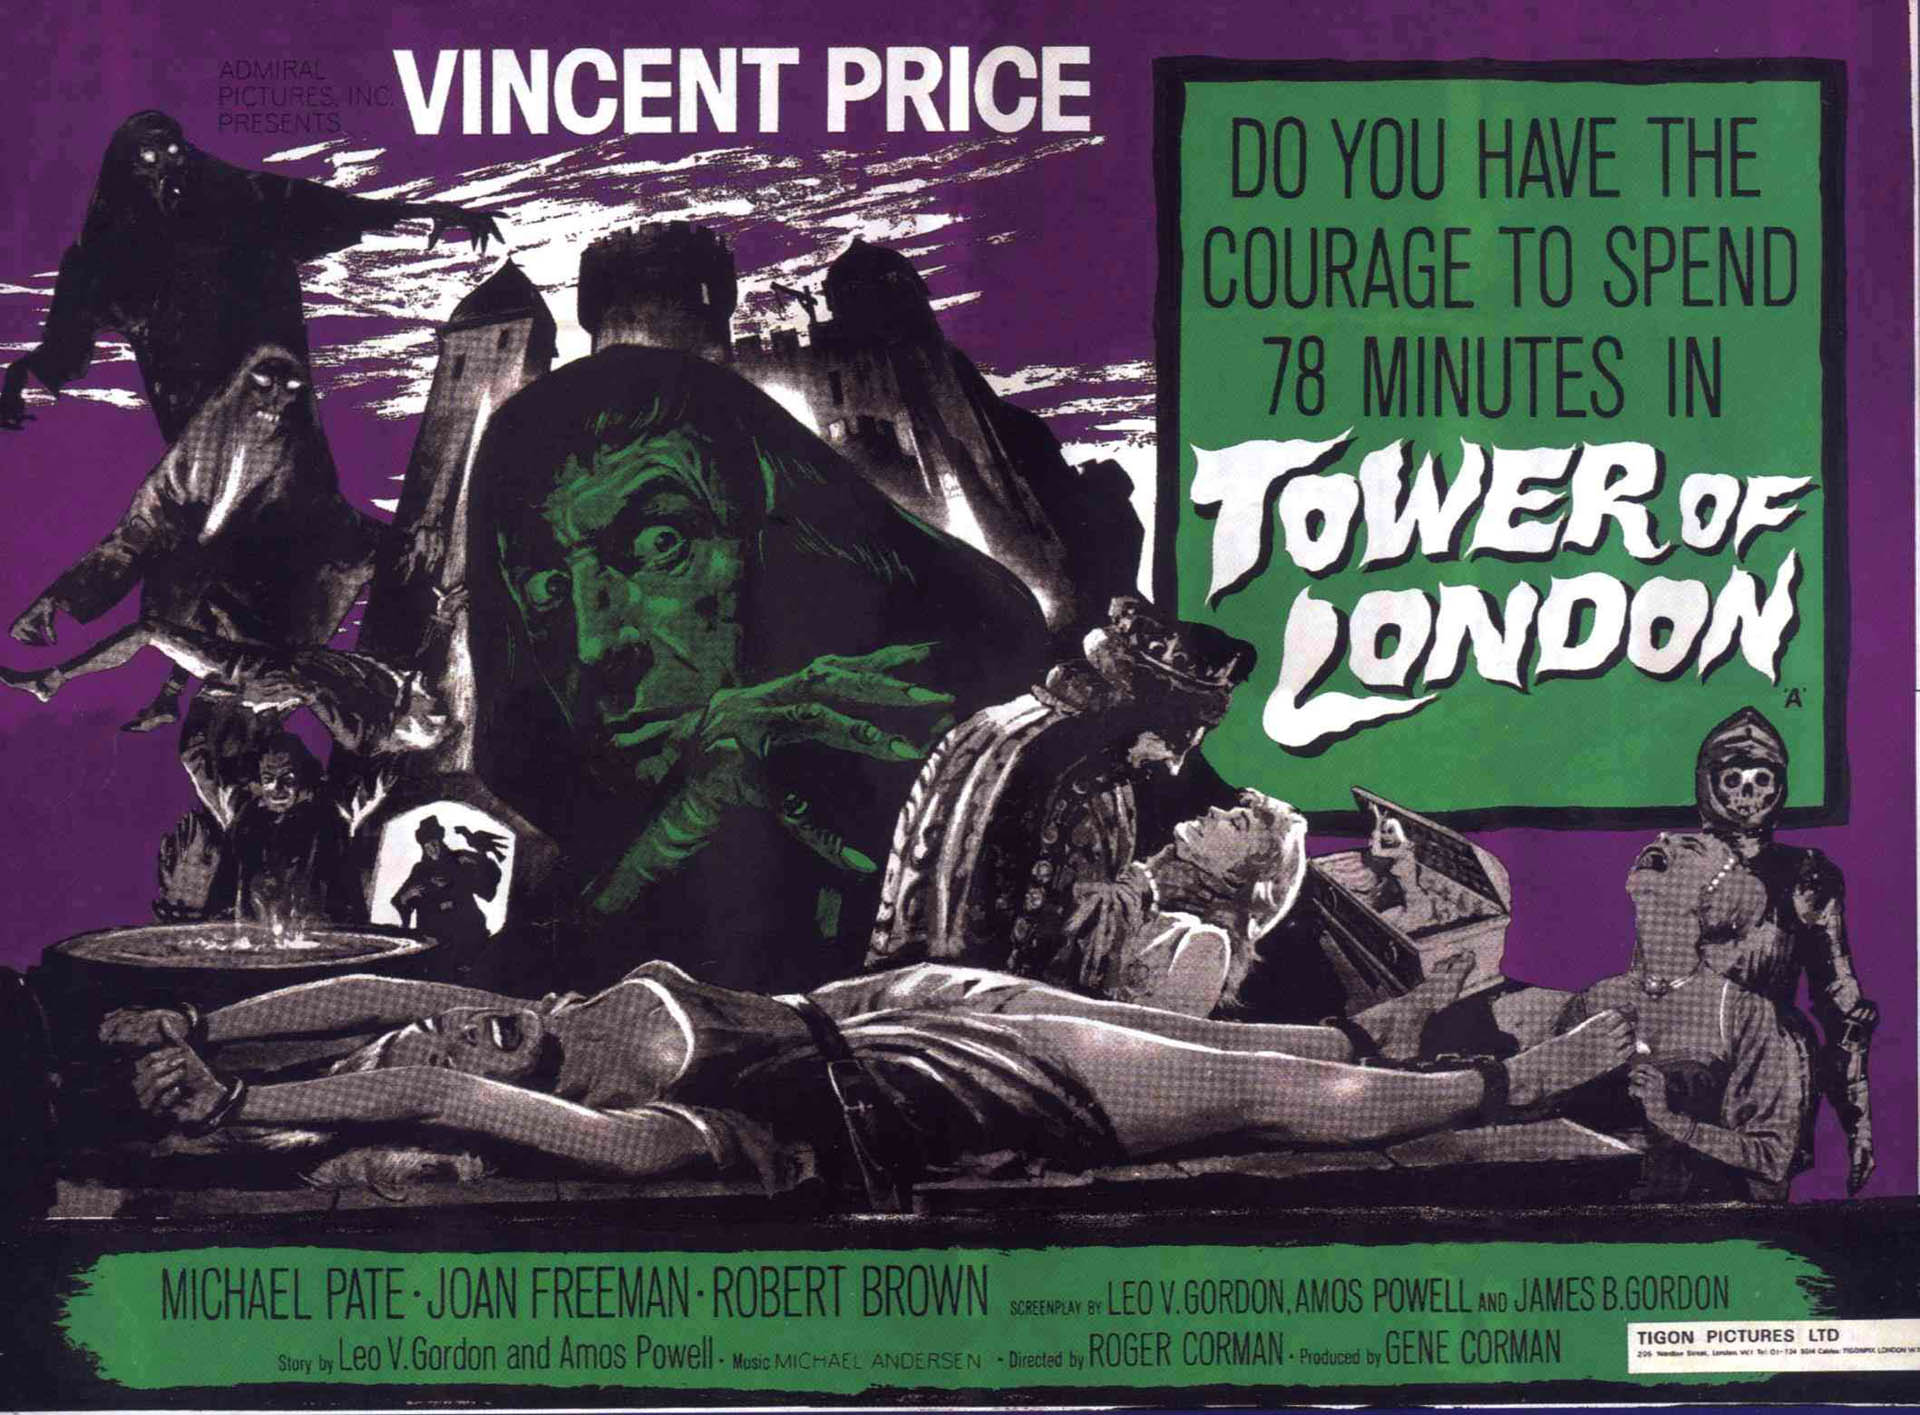 vincent price computer wallpapers - photo #24